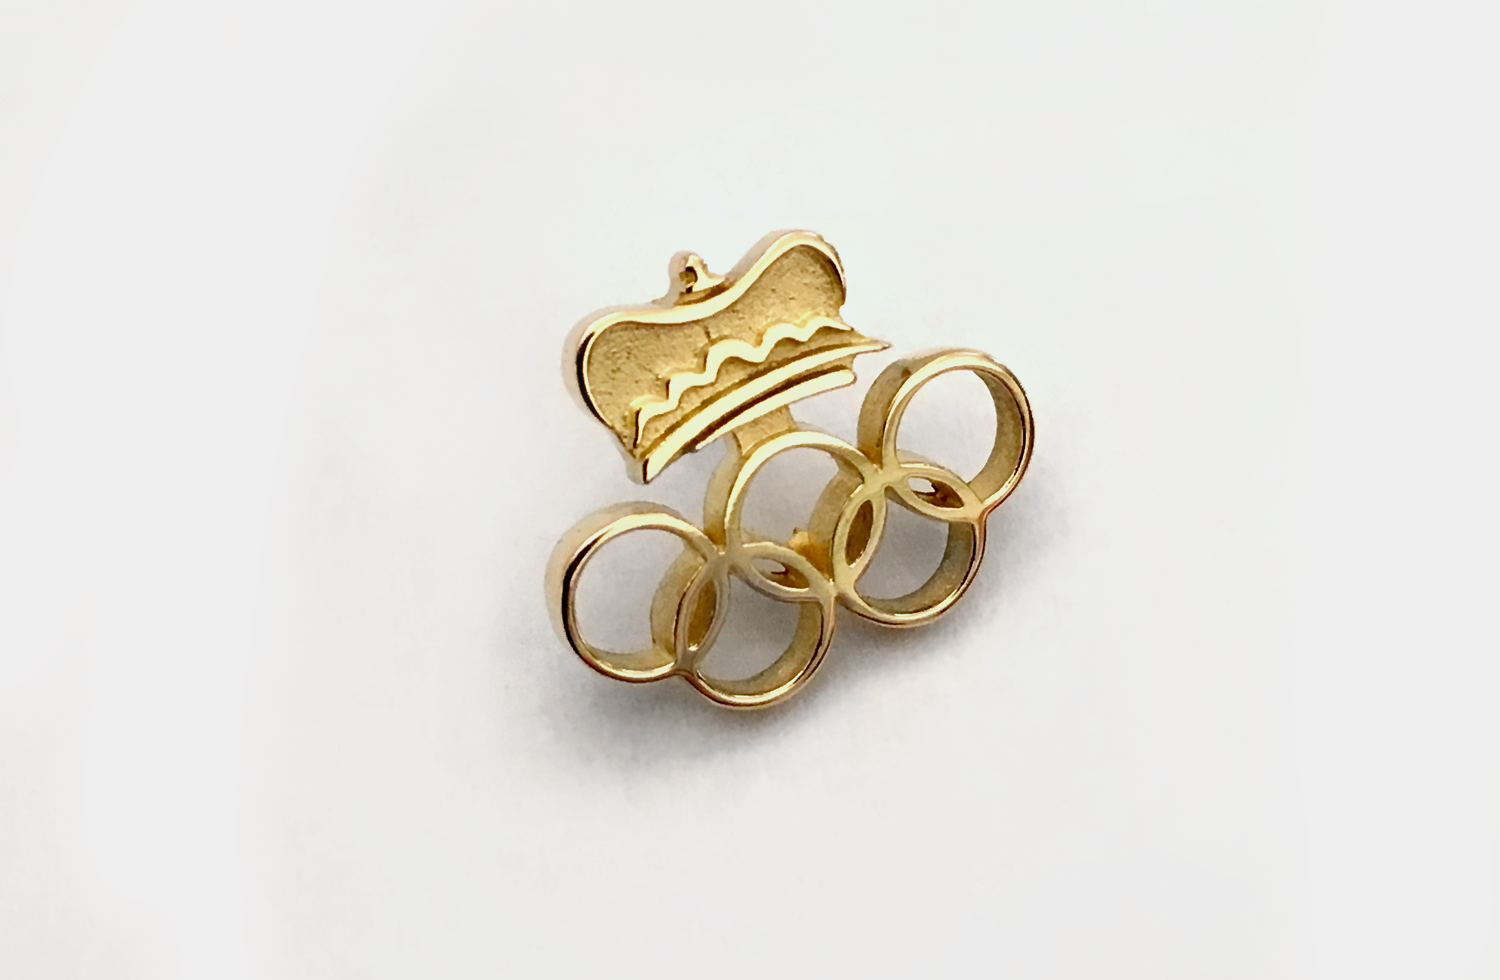 Pin in Gold